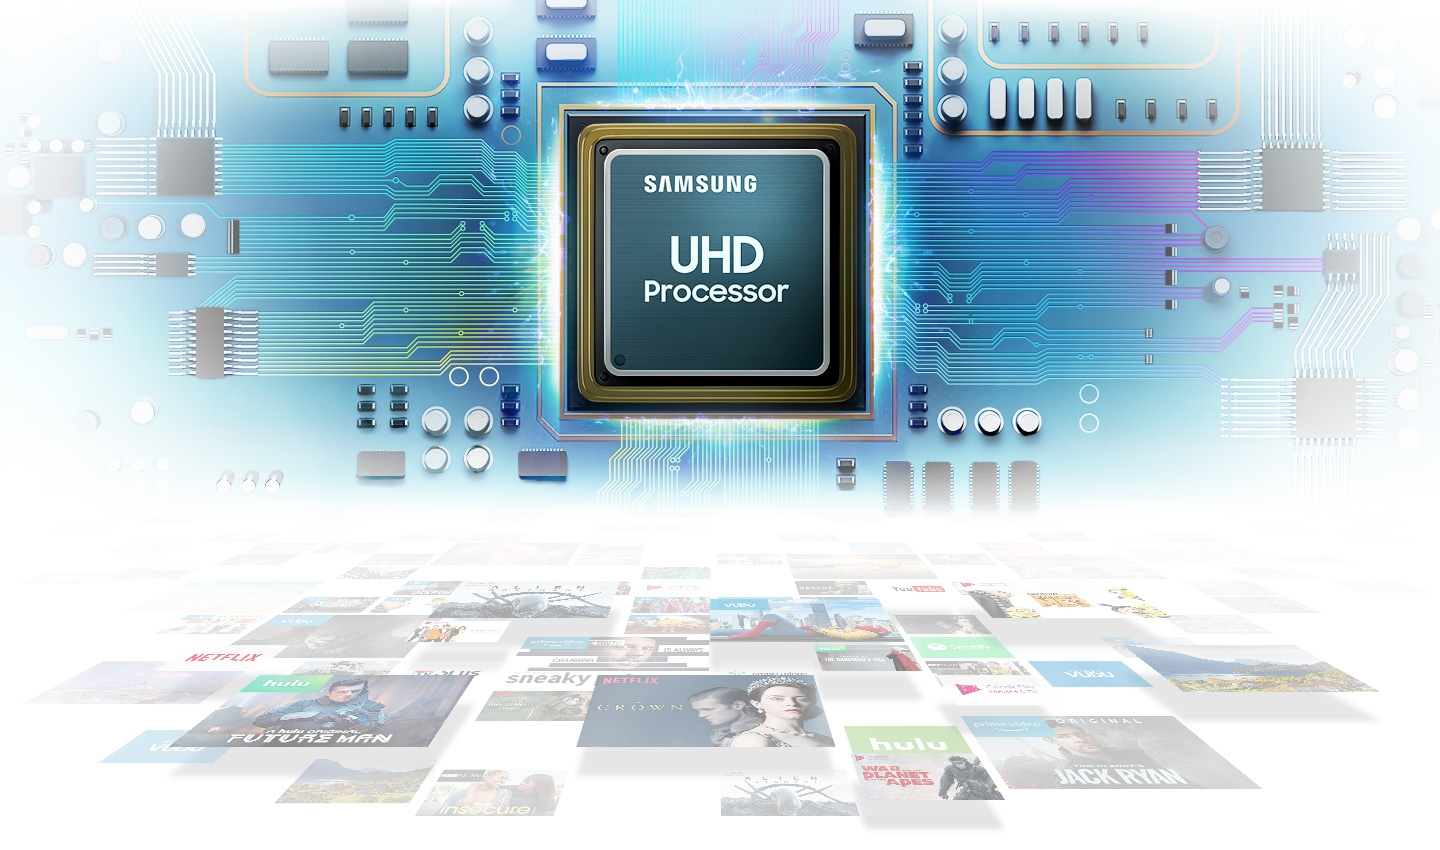 Телевизор SAMSUNG UE55RU7402 (2019г) 4K UHD 3840 x 2160, SMART TV, PQI (Picture Quality Index) 1900, HDR 10+, DVB-T2C - фото UHD Processor,powerful picture quality